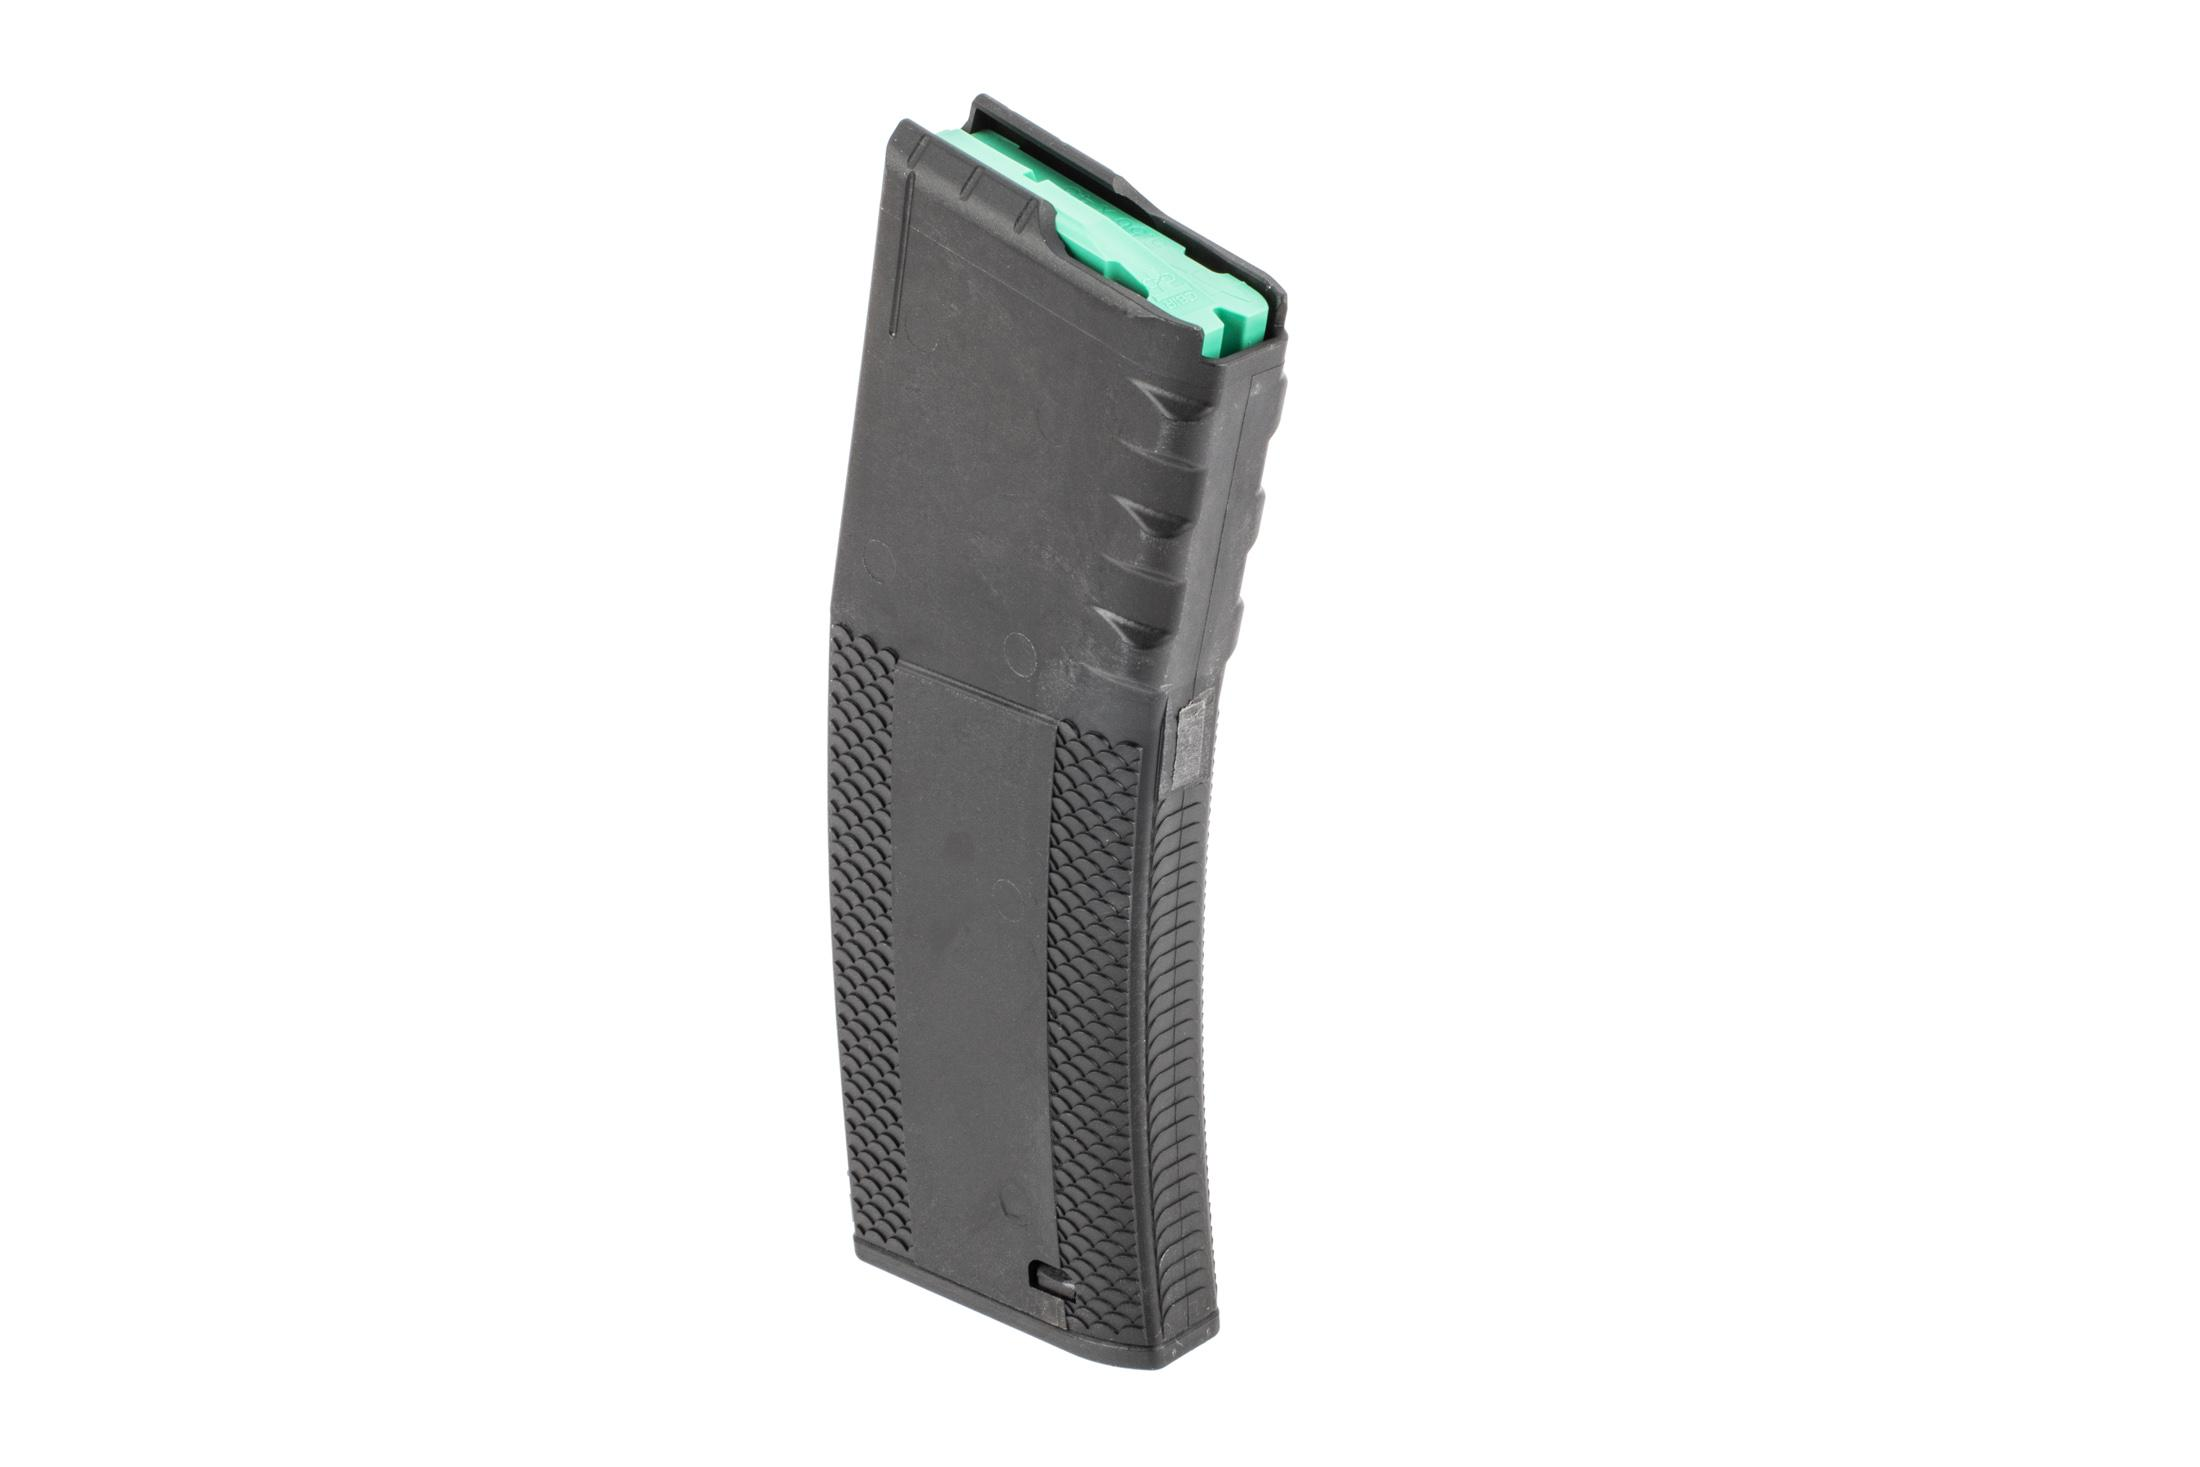 Troy Industries Battlemag for AR-15 - 30 Round Capacity - Black Polymer